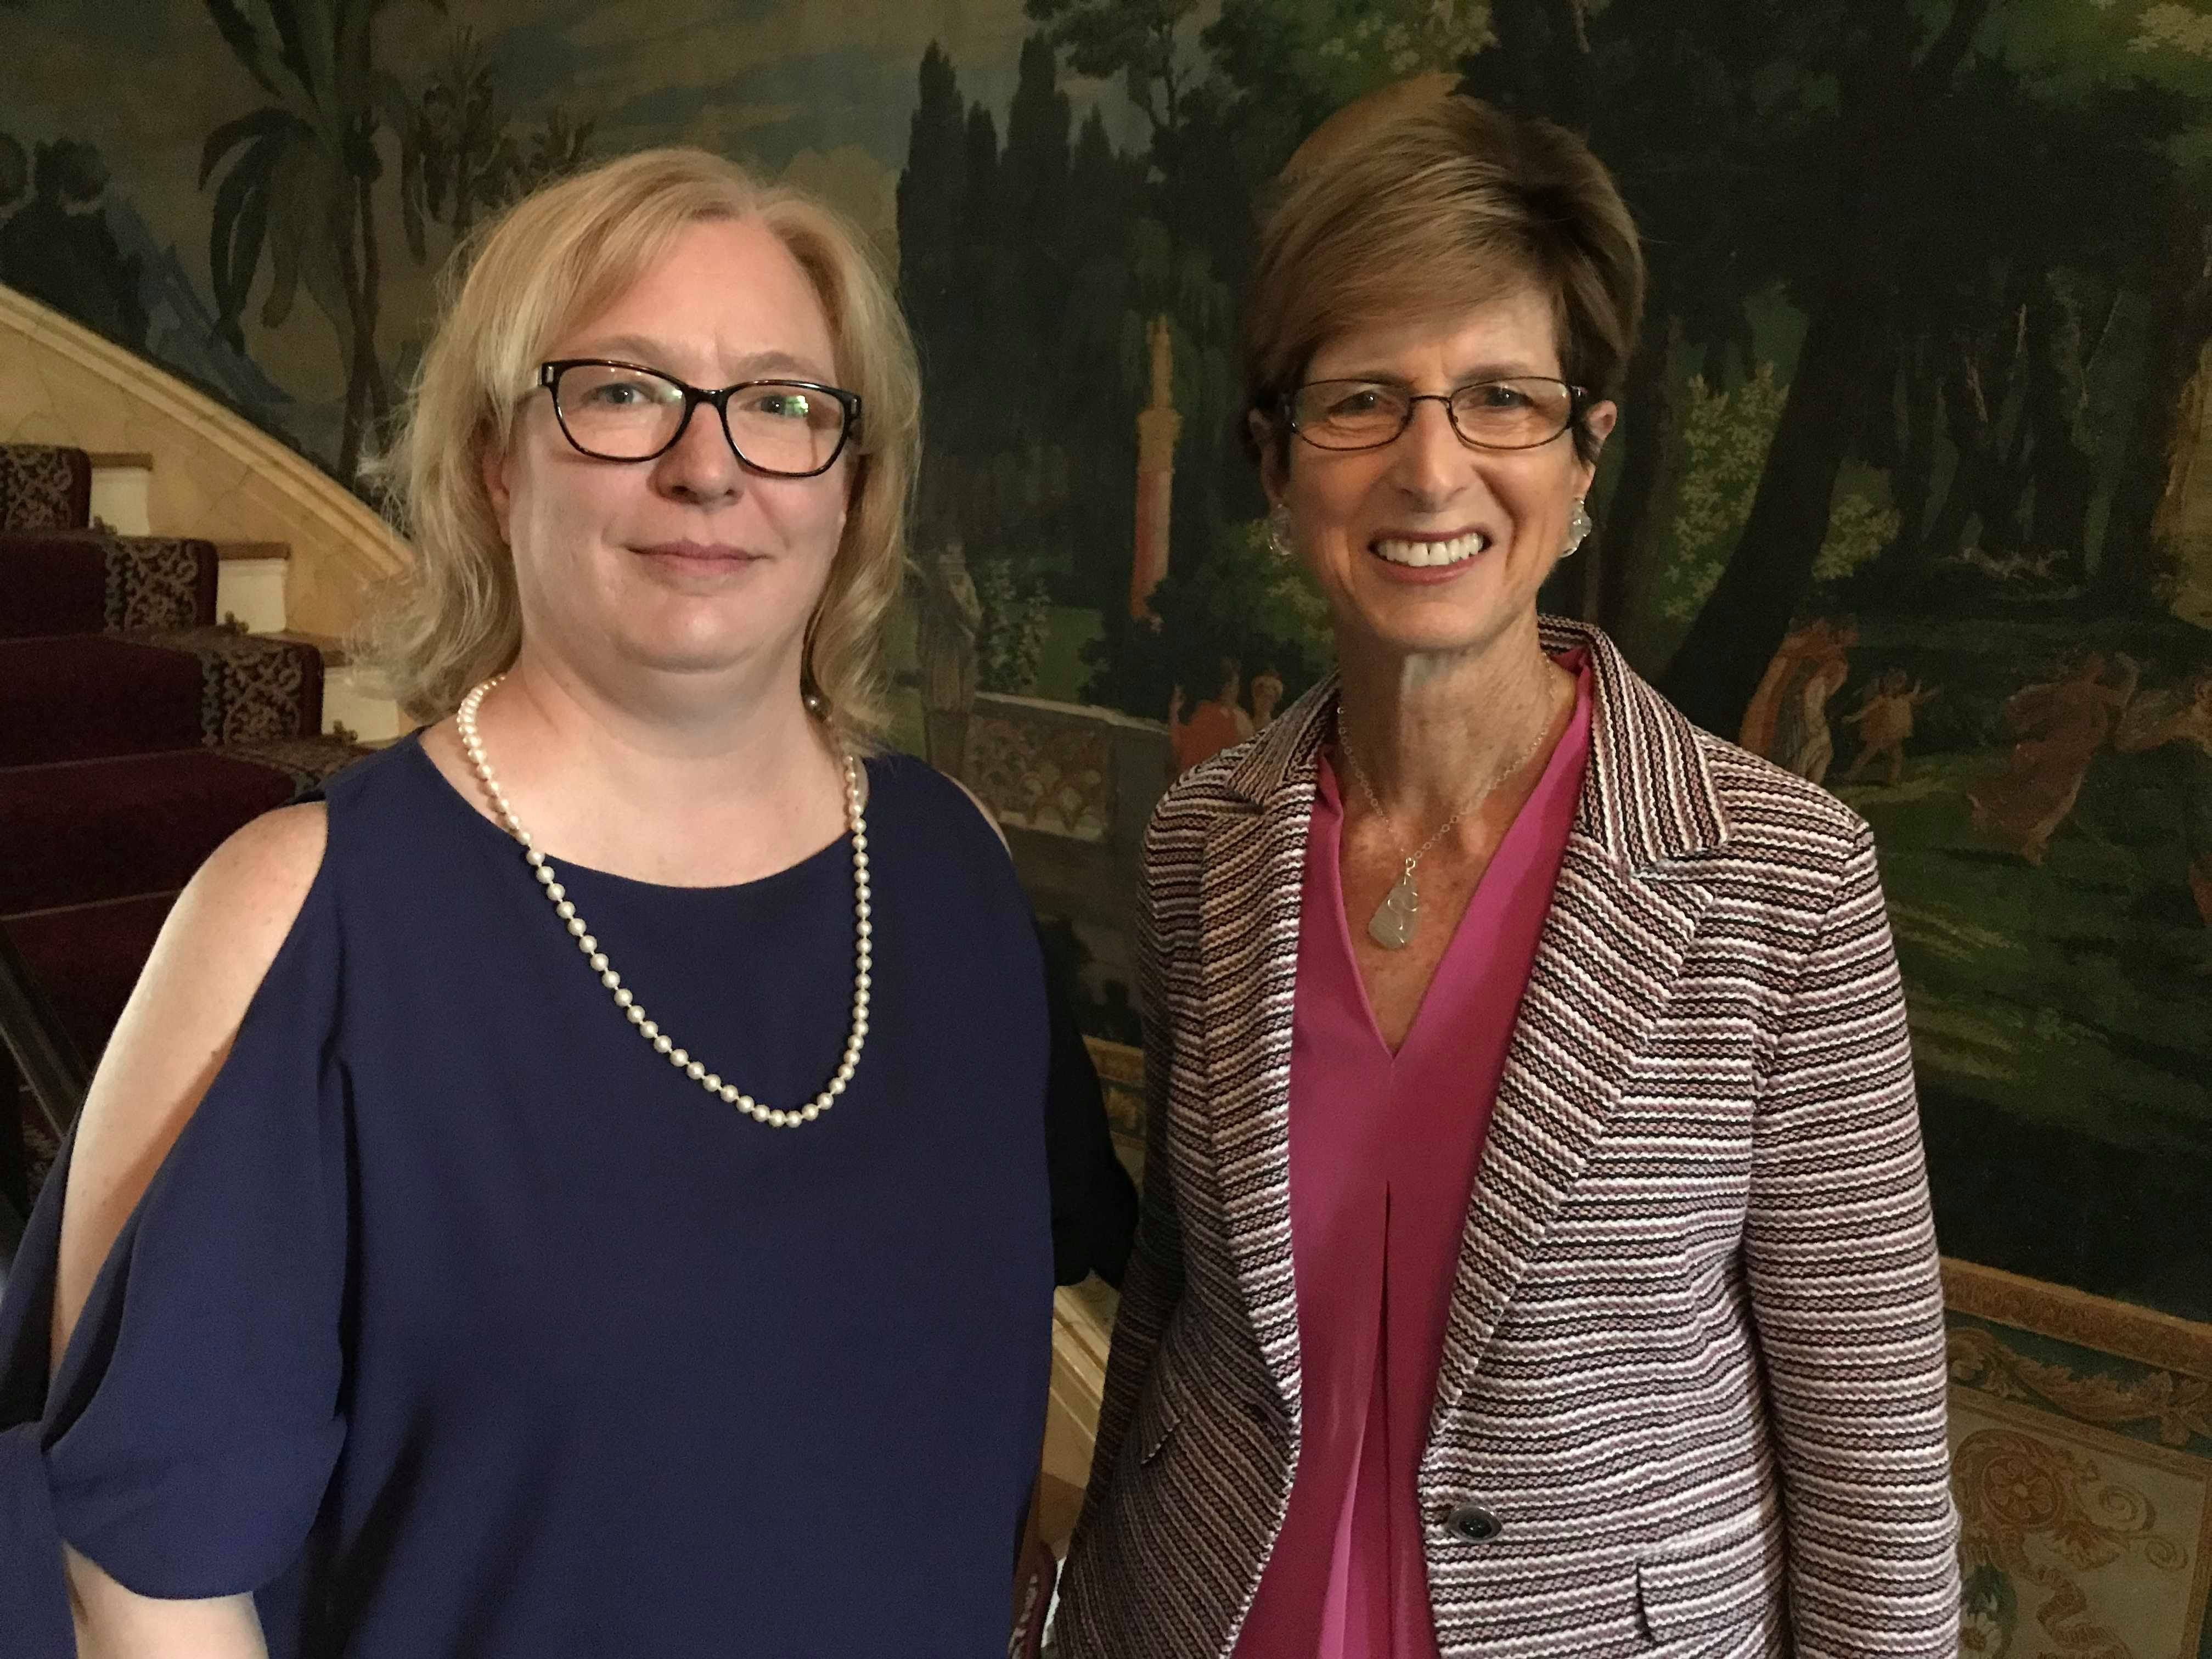 Former New Jersey Gov. Christine Todd Whitman poses for a photo with The Hermitage Chief of Museum Operations Amy Williams on Wednesday in Nashville, Tenn.